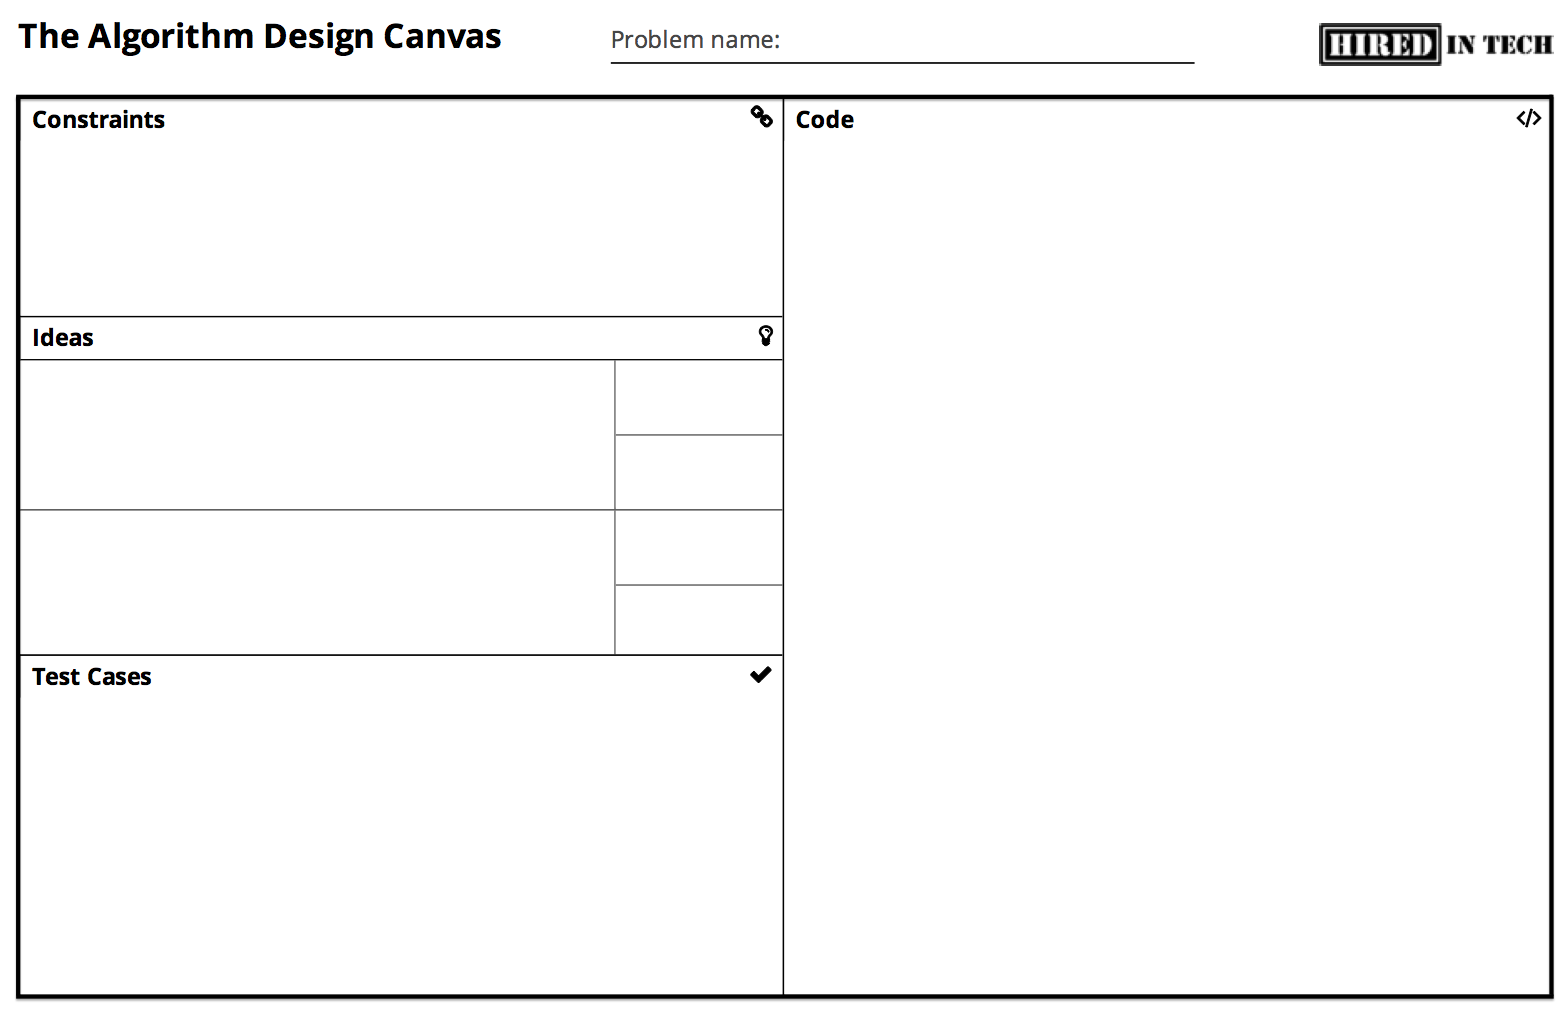 HiredInTech's Algorithm Design Canvas